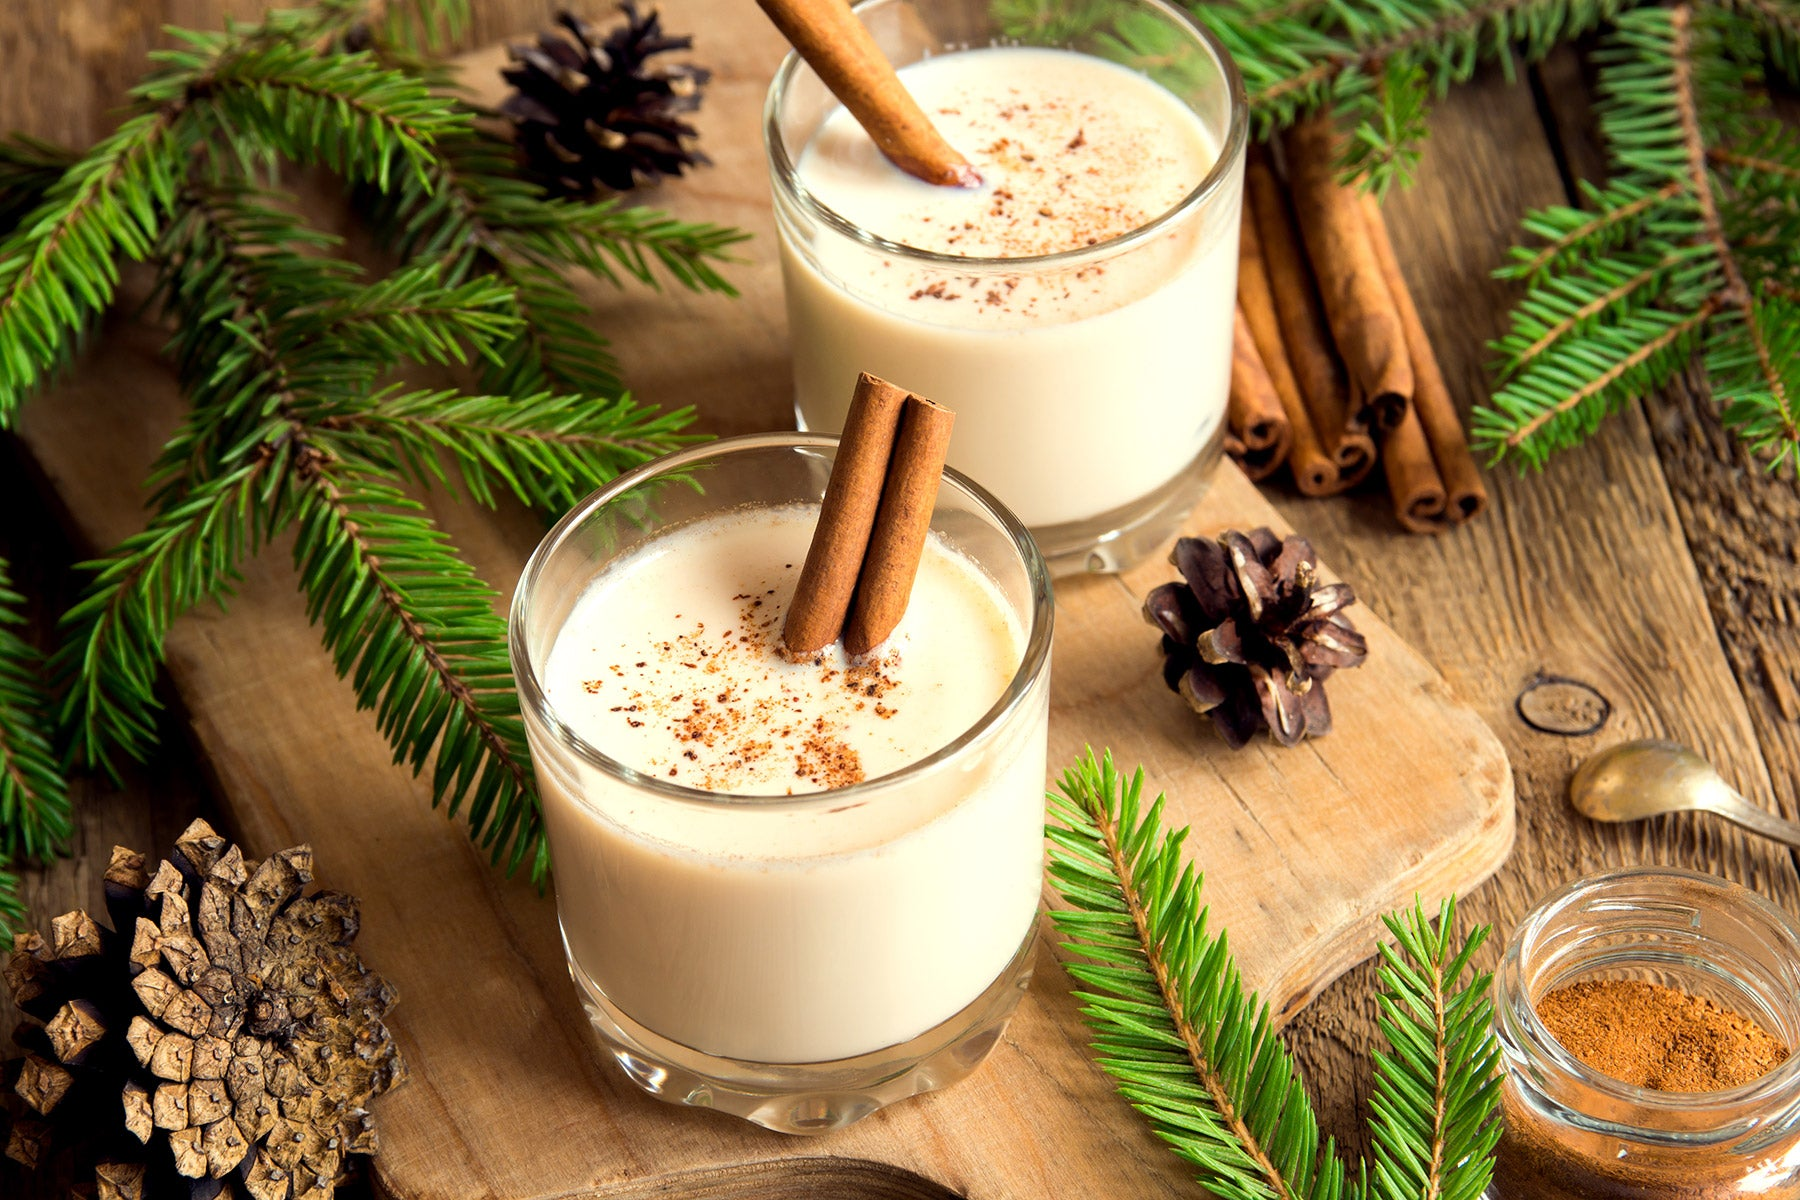 [Recipe] VitaCup Holiday Eggnog with Alcohol